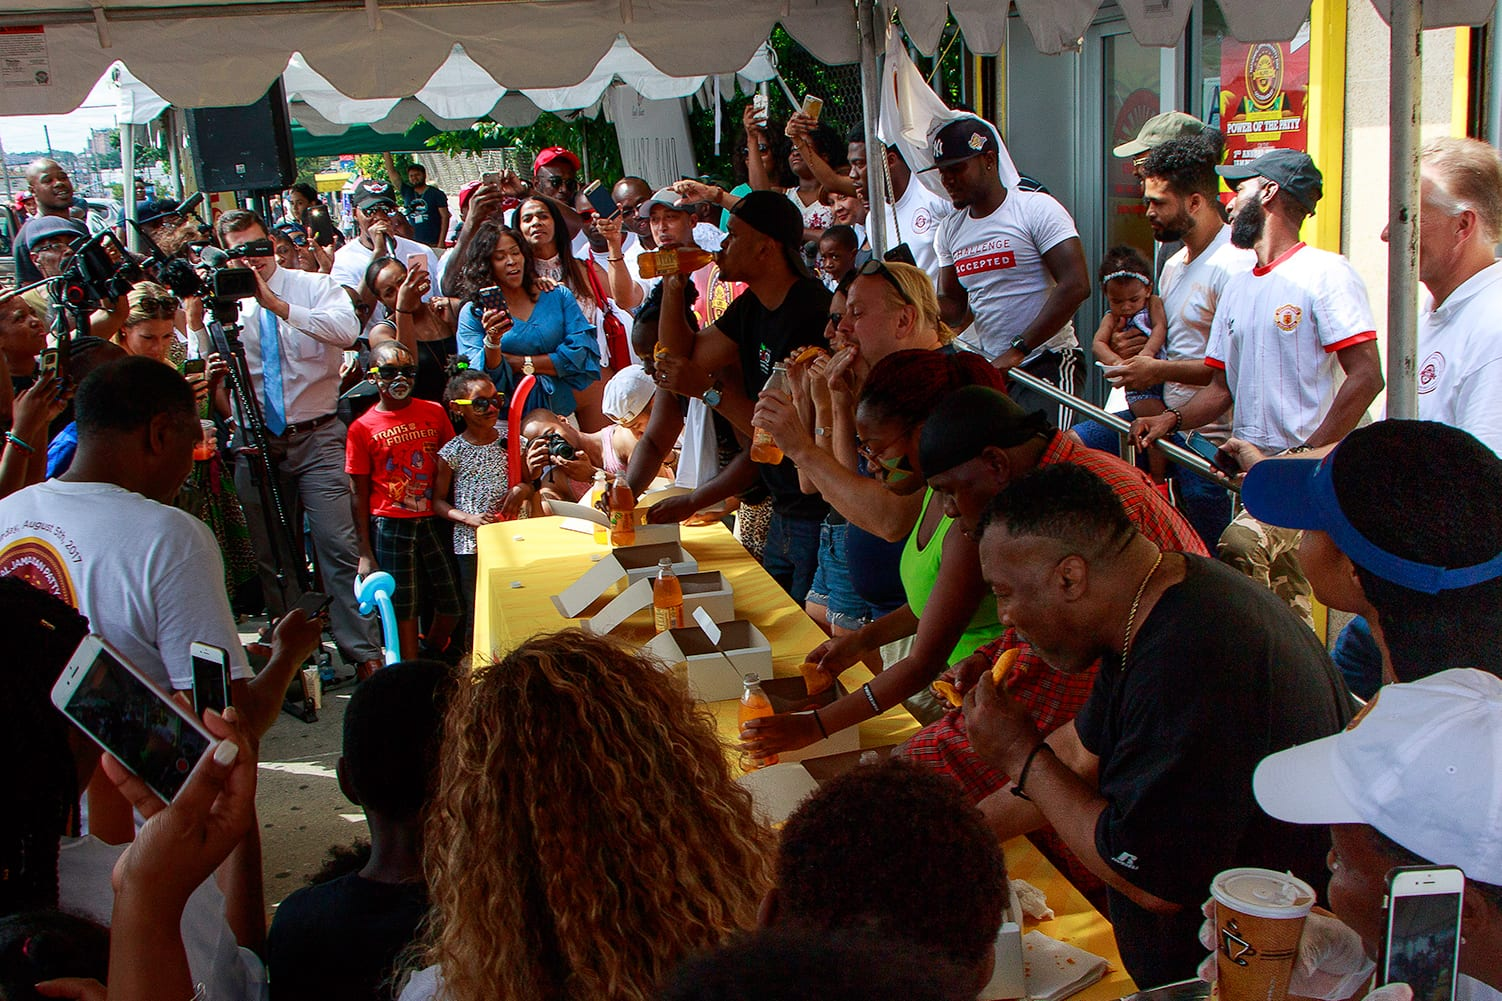 Patty eating contest during the national jamaican patty day celebration